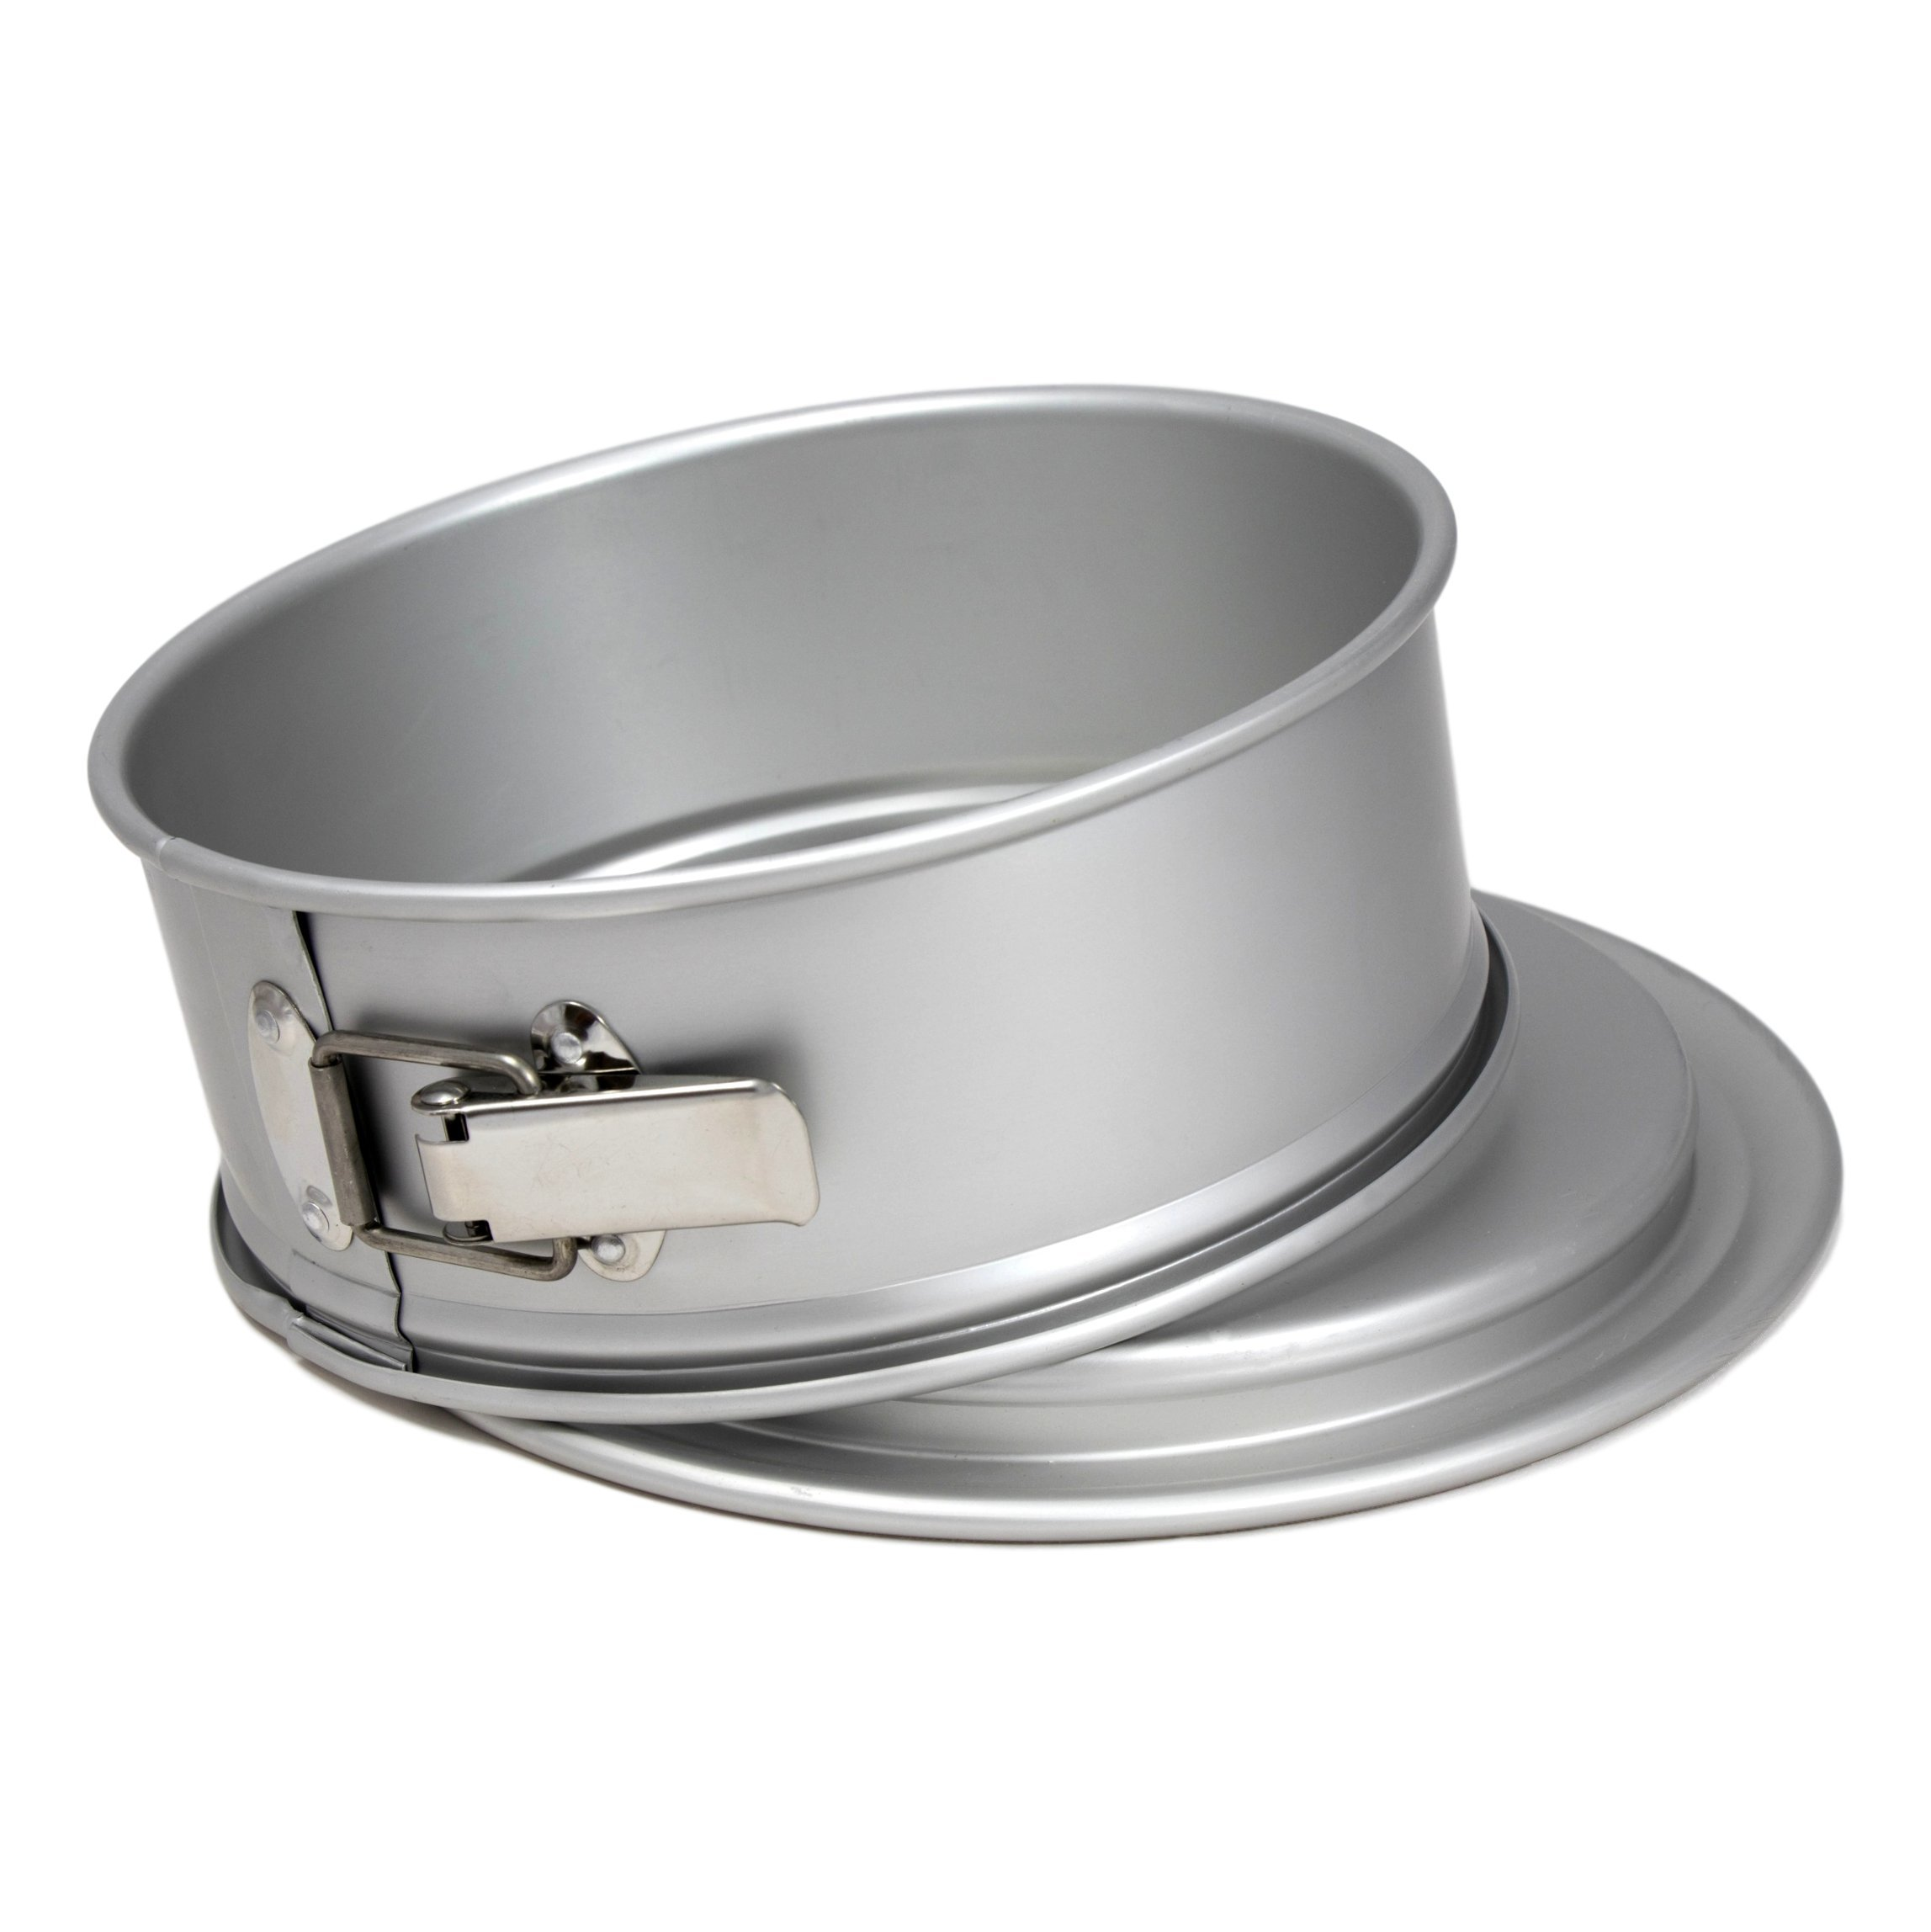 Kitchen Knack Professional Anodized Aluminum 9 Inch Round x 3 Inch Springform Cake Pan